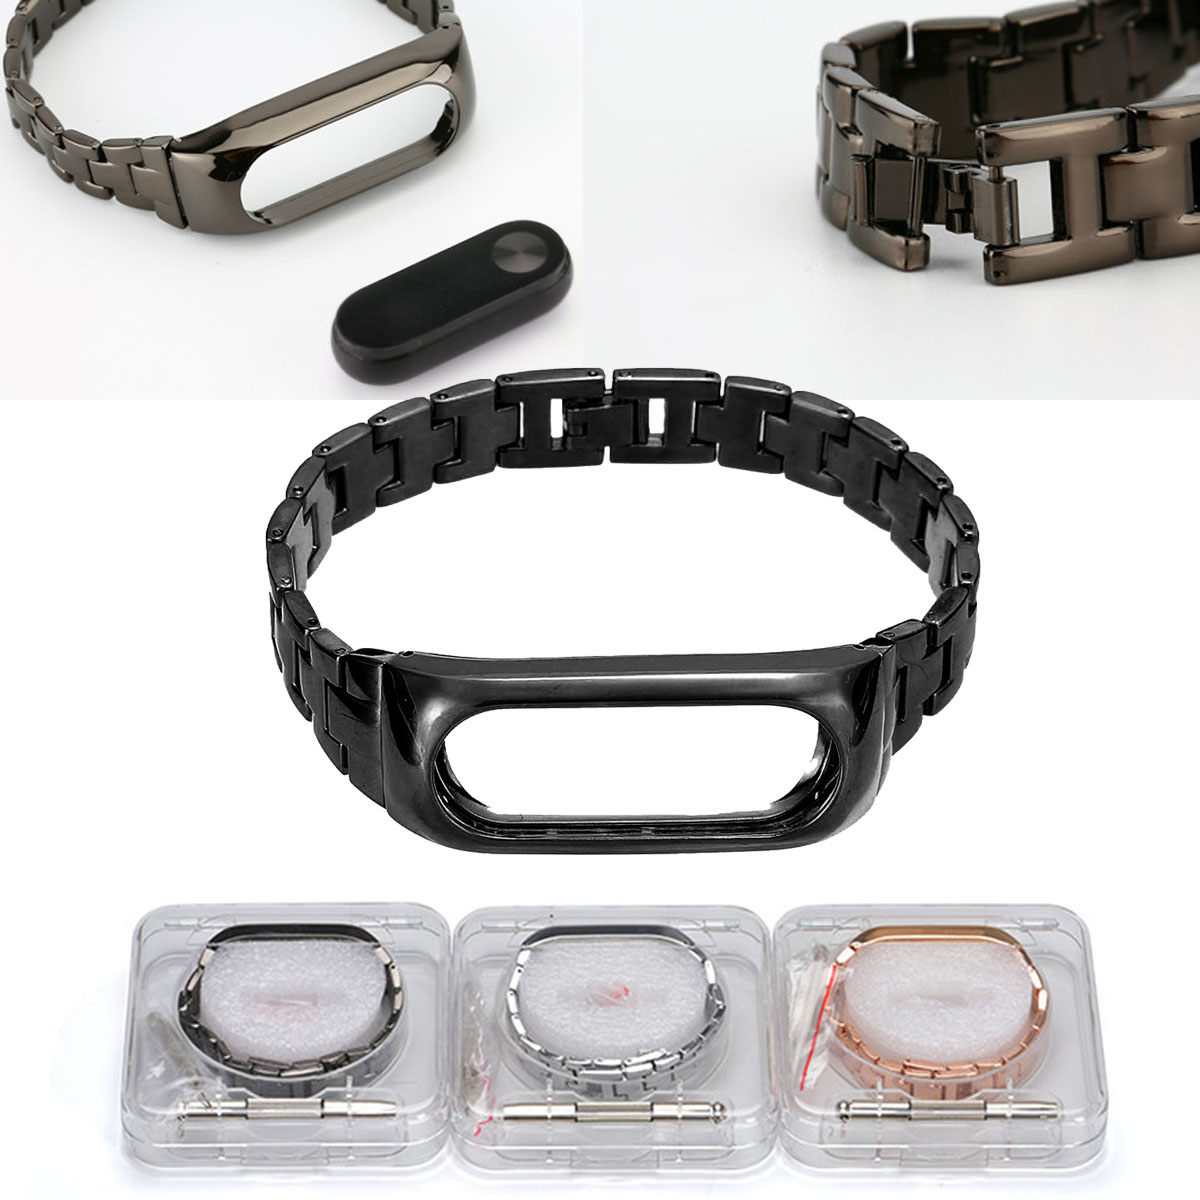 Stainless Steel Case Frame Wristbands Replacement Bracelet Watch Strap With Tool For Xiaomi/Miband 2 Smart Watches Accessories original xiaomi steel net watch band for miband